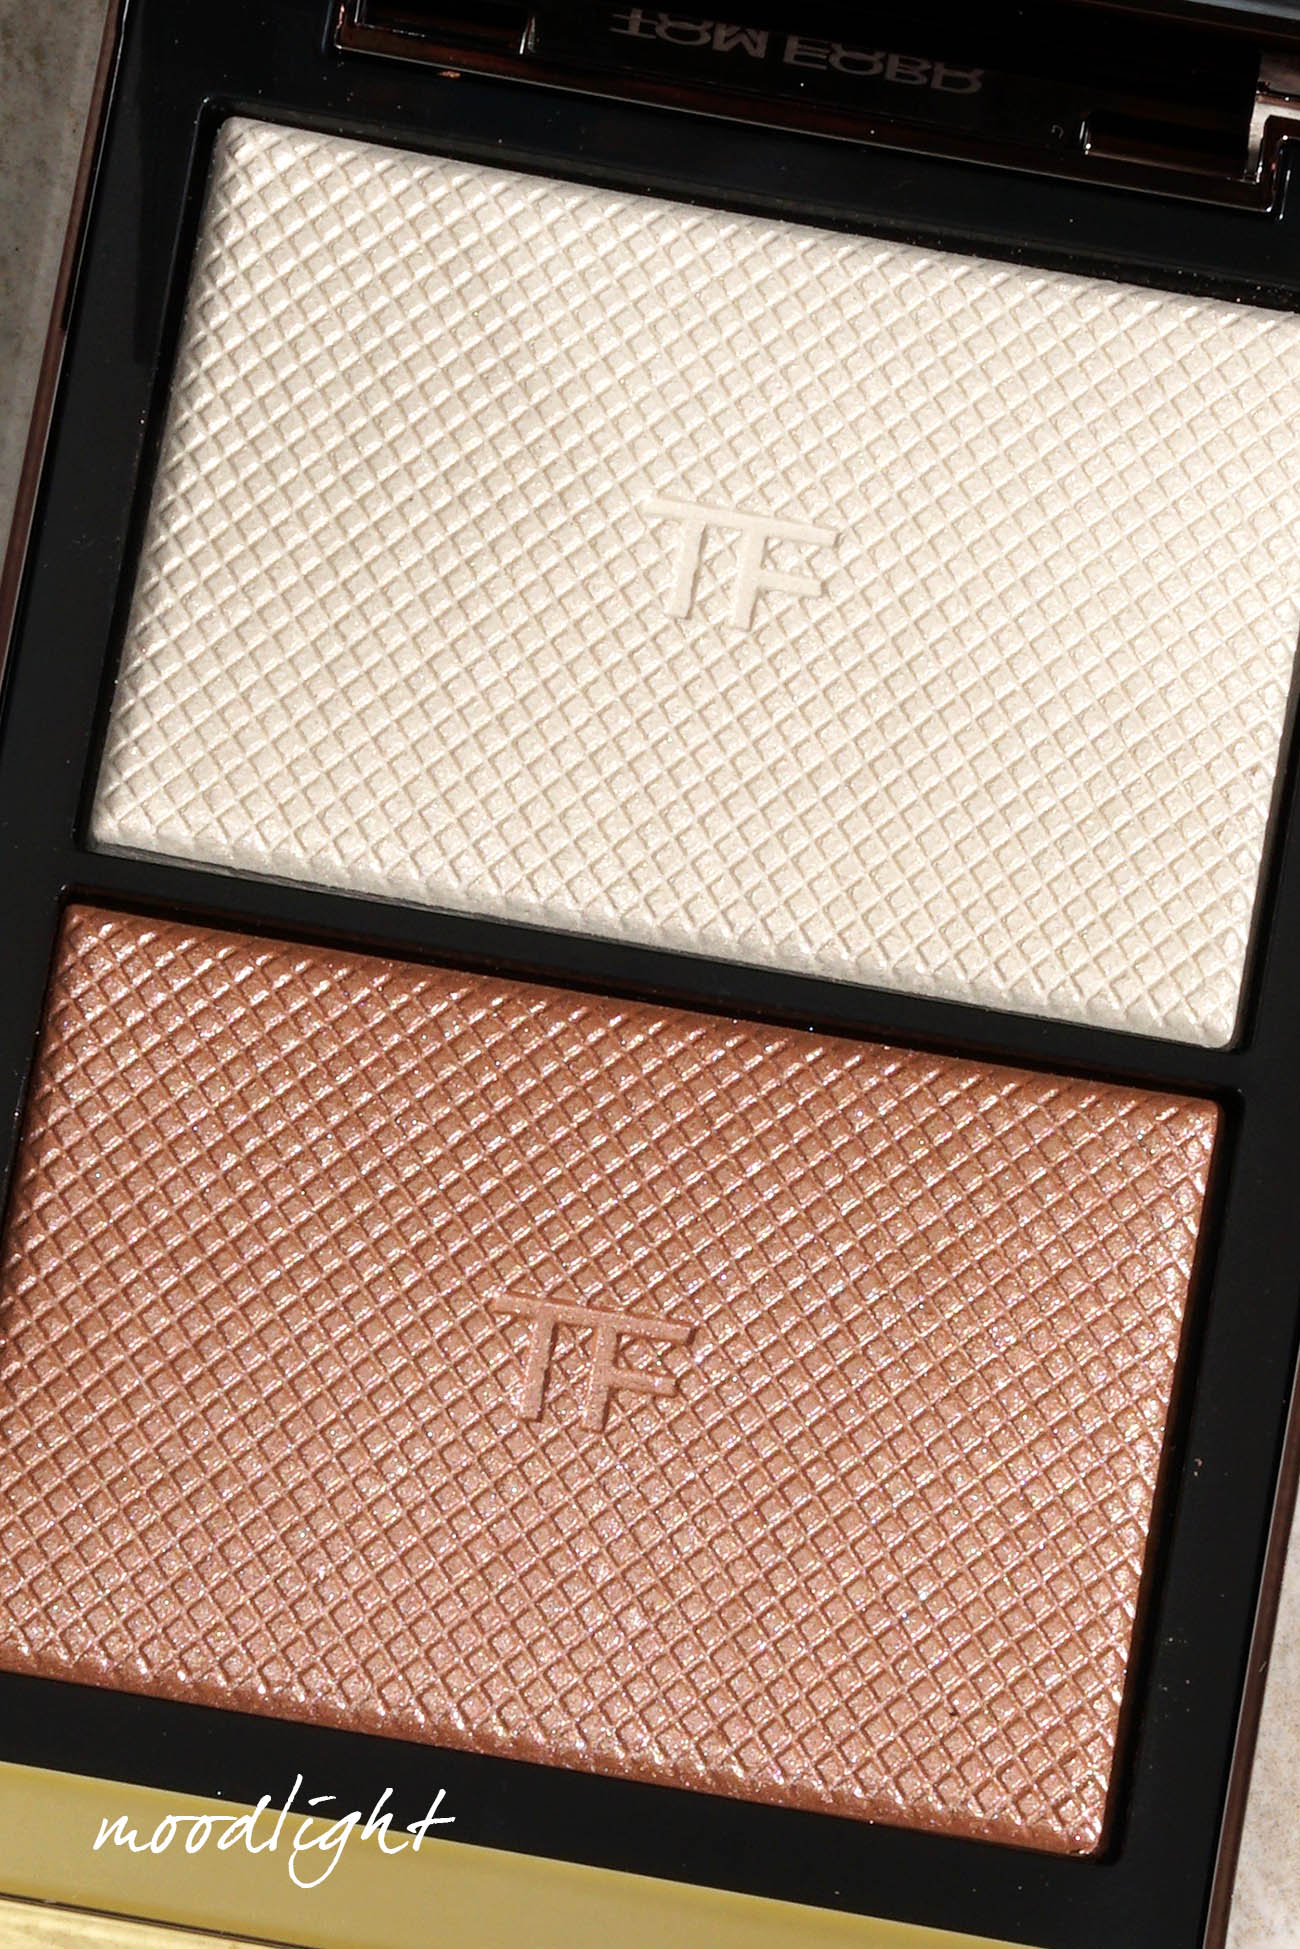 Tom Ford Skin Illuminating Duo in Moodlight